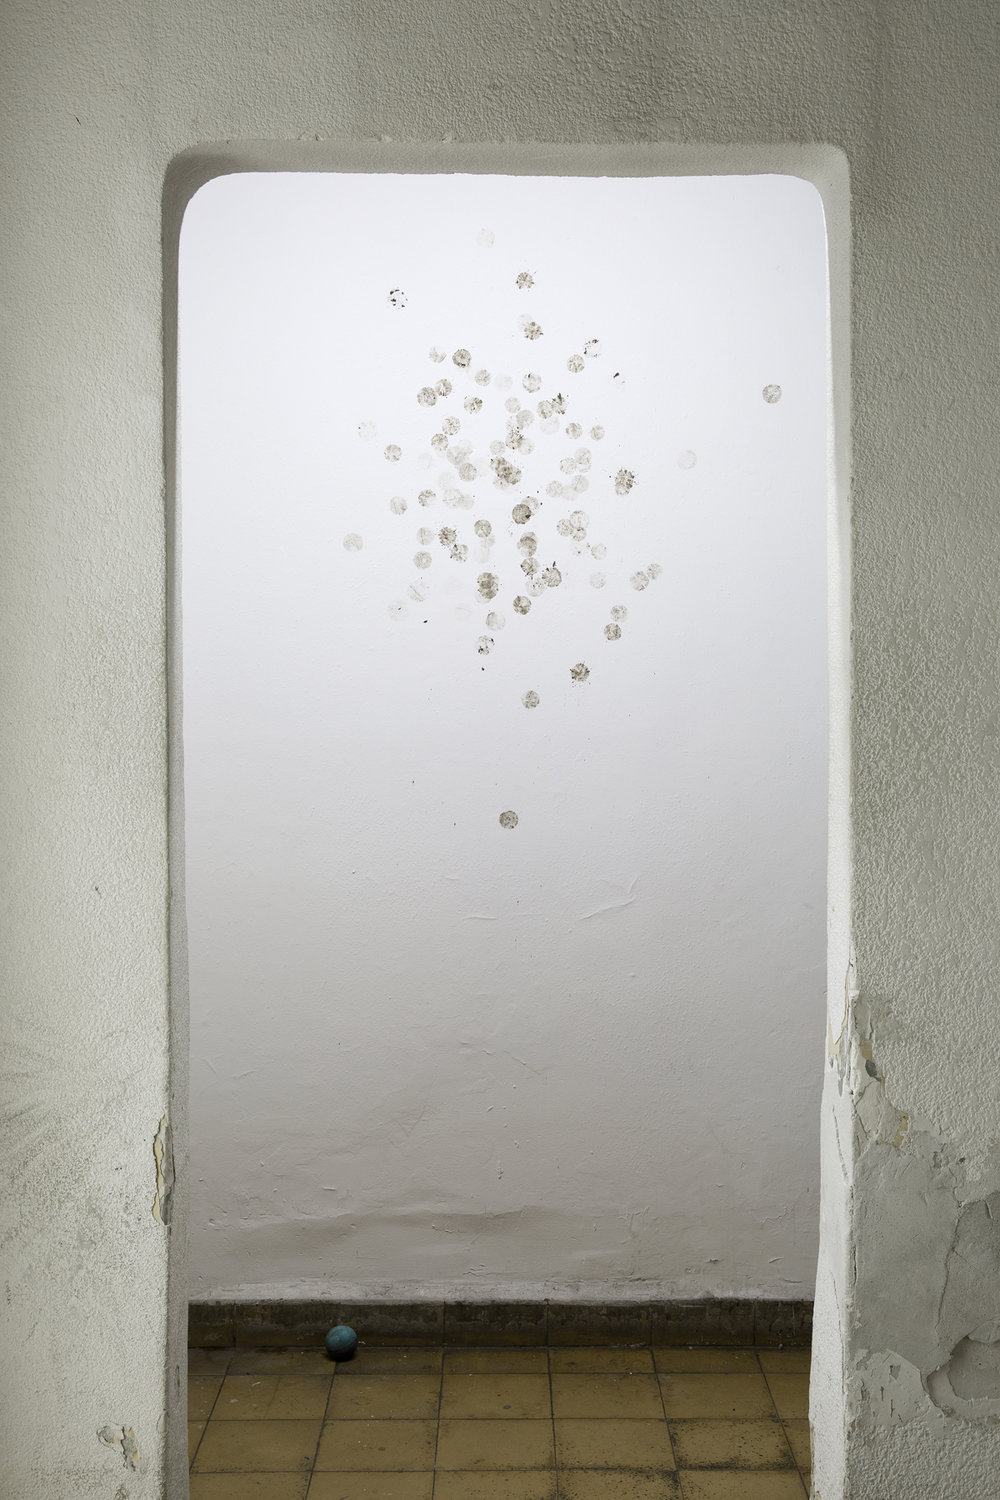 Ball, 2017. Installation with muddy ball against wall (Unique), dimensions variable.